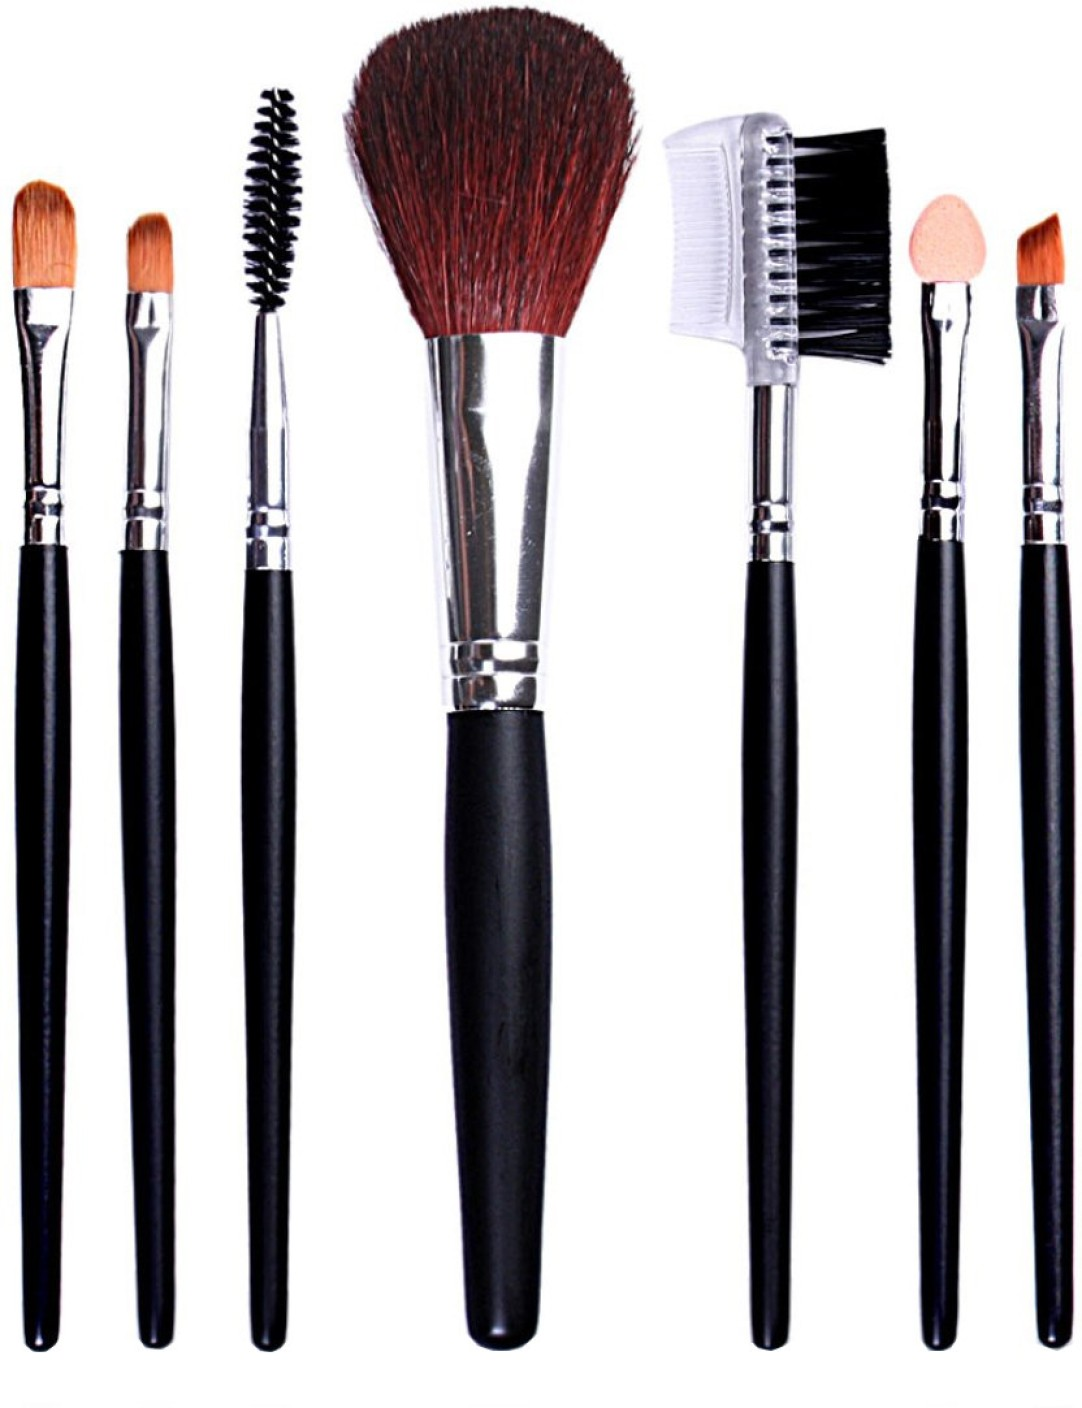 Shop makeup brushes and applicators at Sephora. Find the highest-quality natural & synthetic cosmetics brushes from top beauty brands.